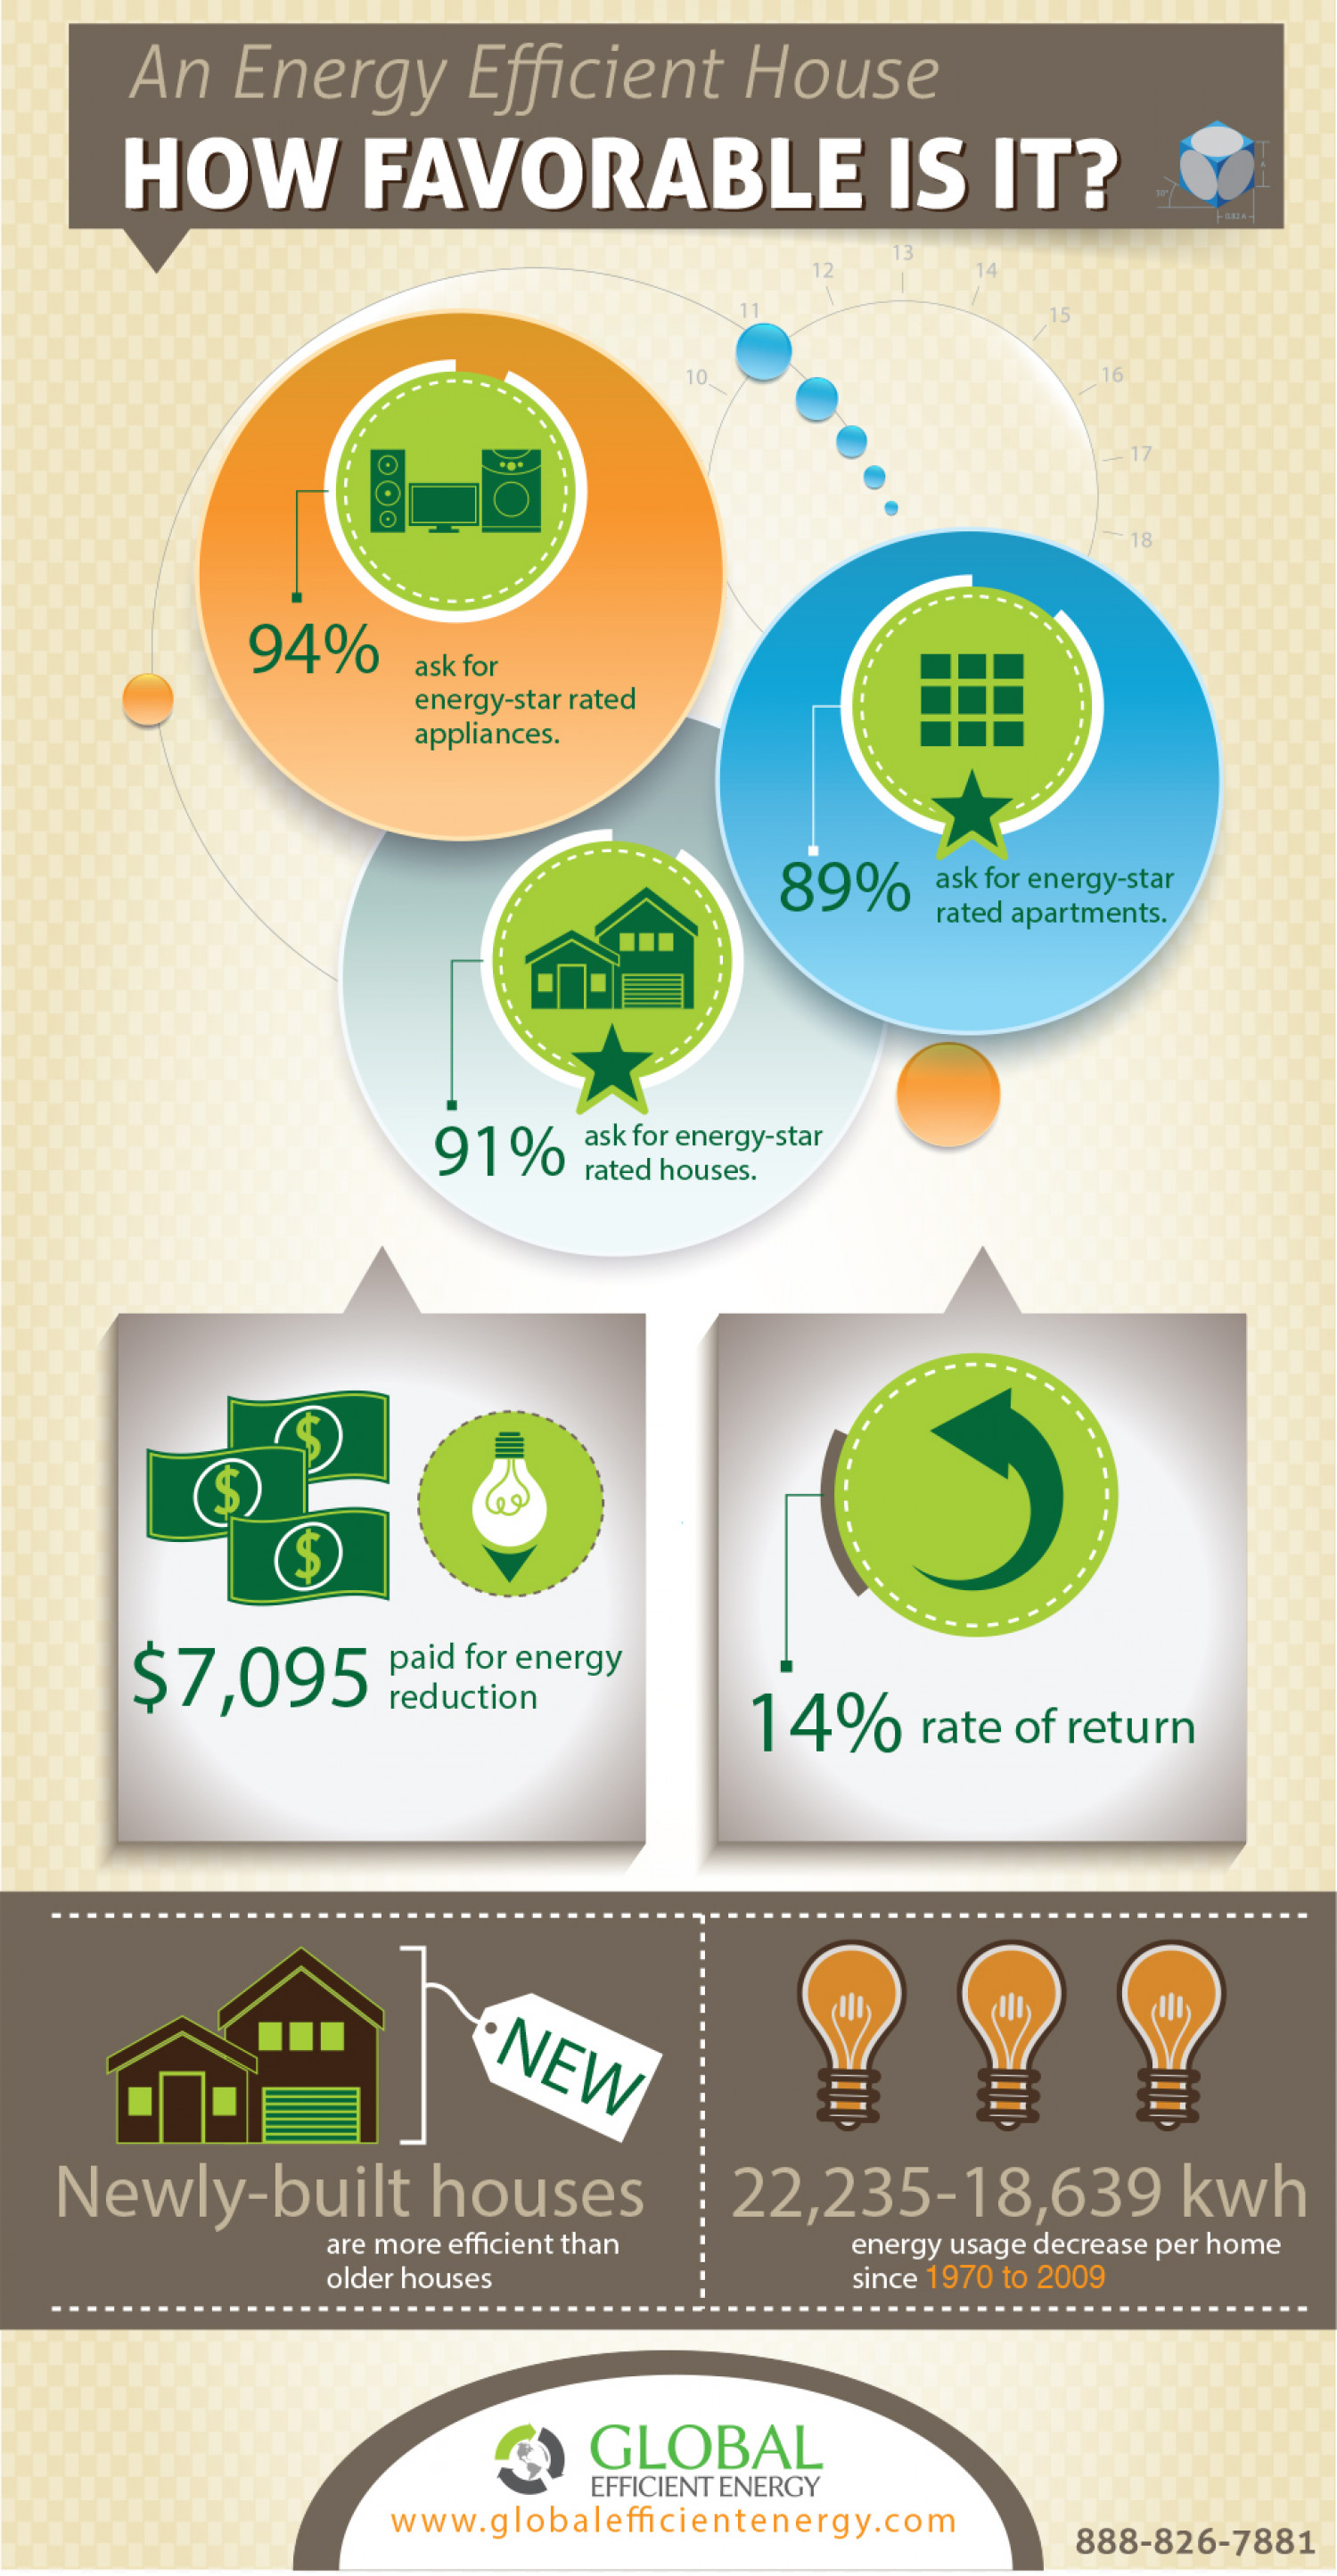 An Energy Efficient House - How Favorable is it? Infographic